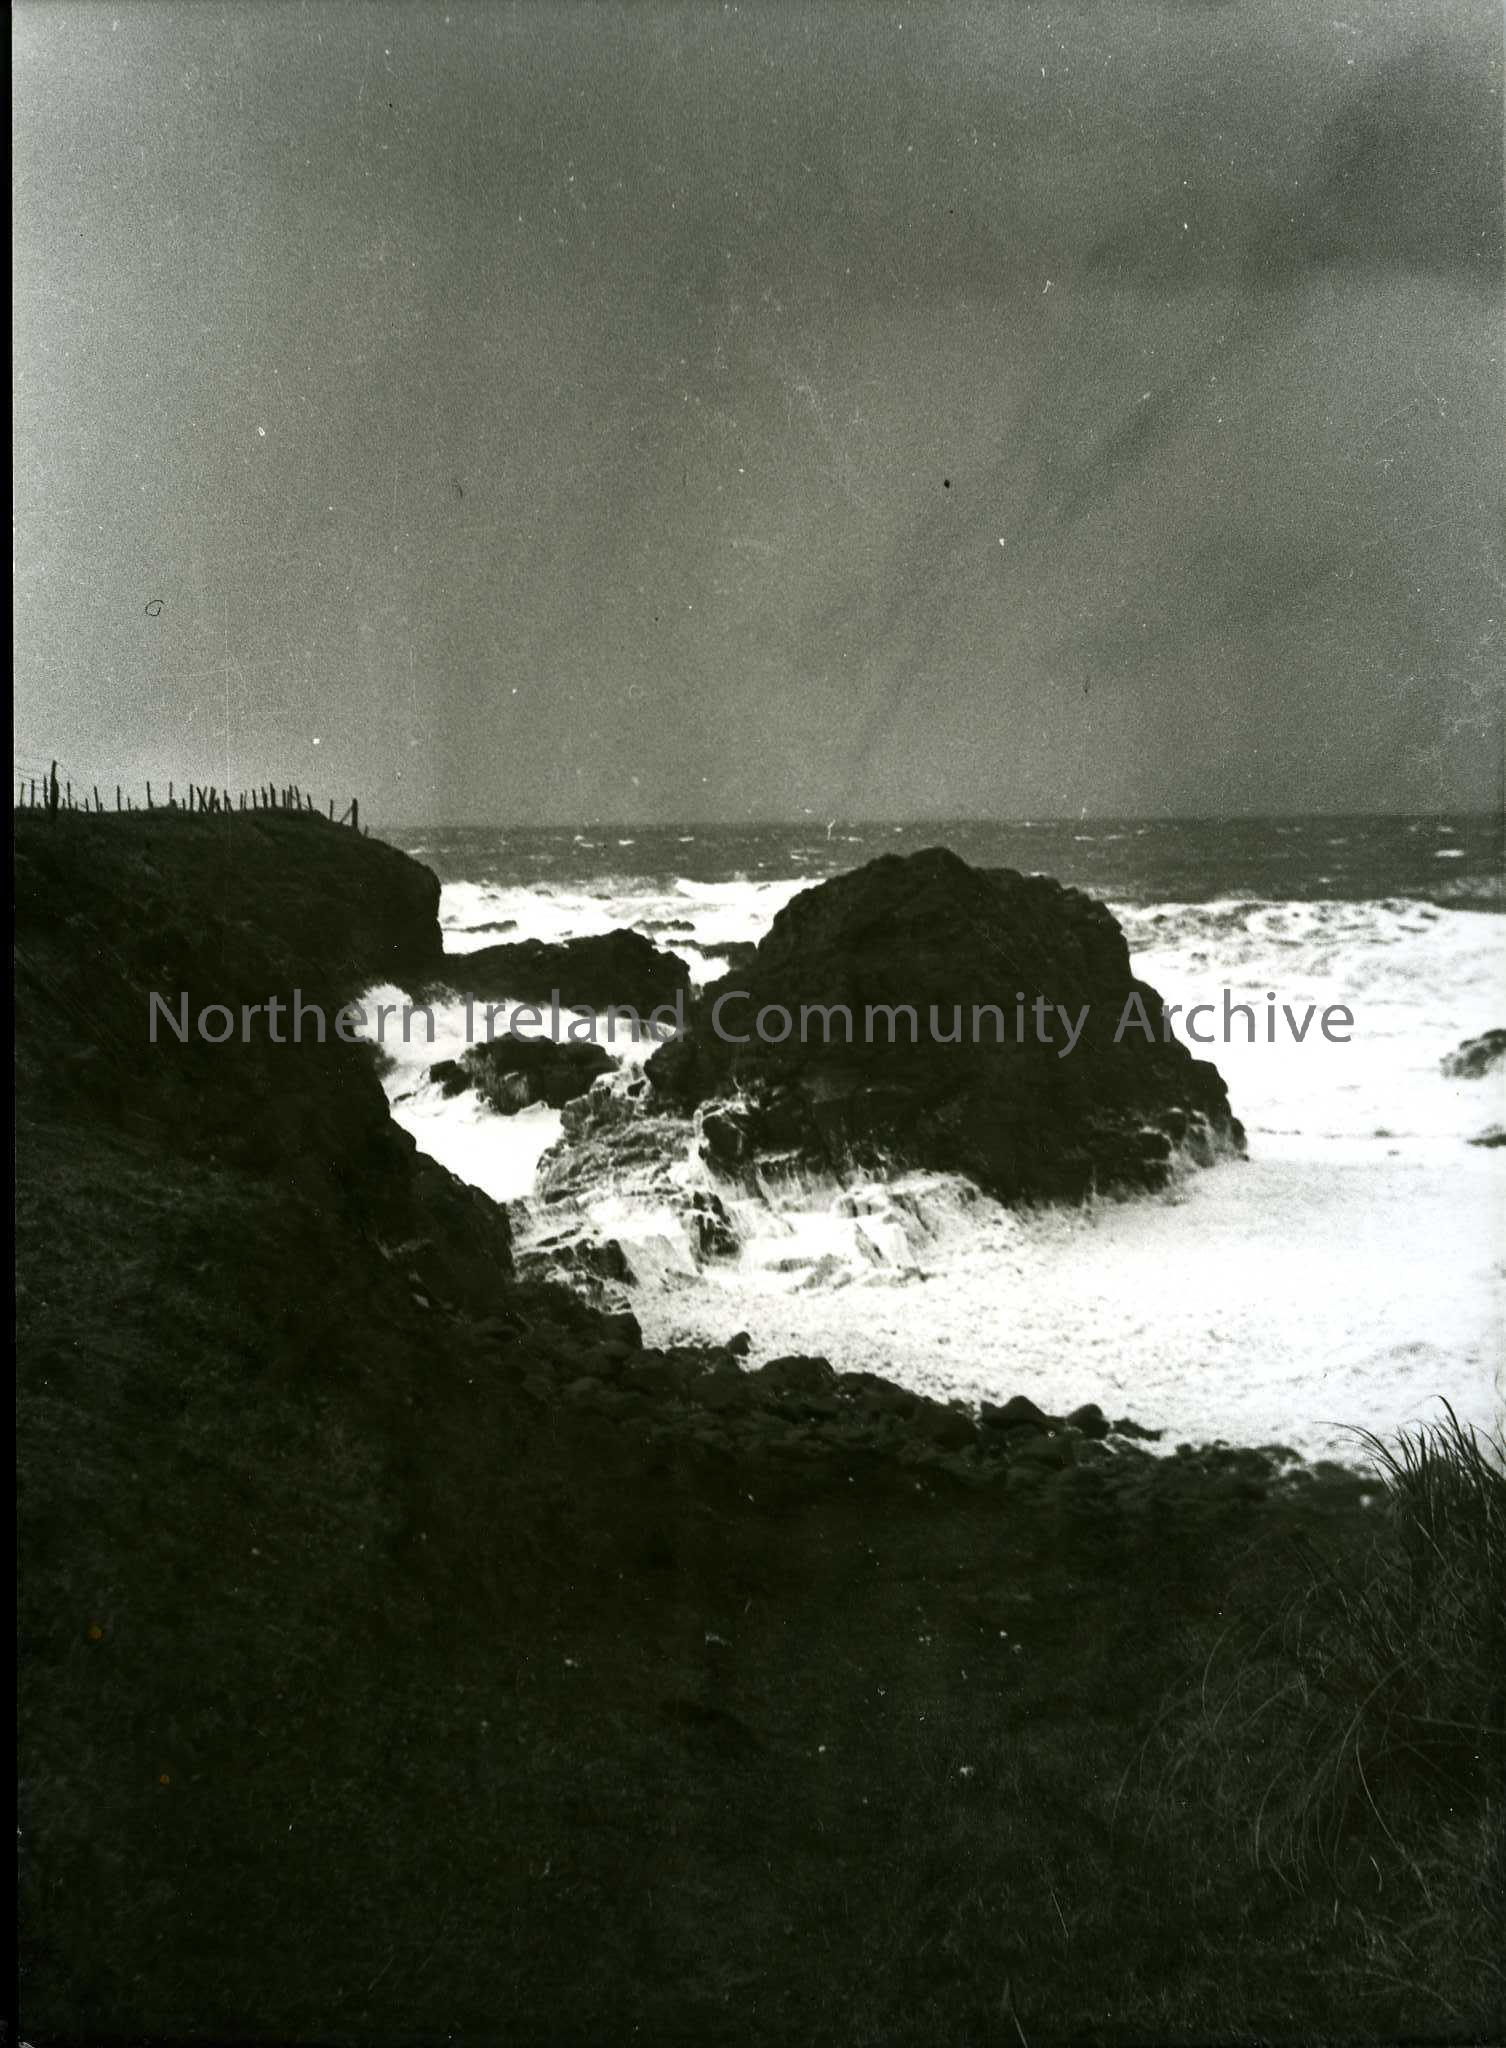 Printed black and white photograph – Sea, rocks and cliff edge.